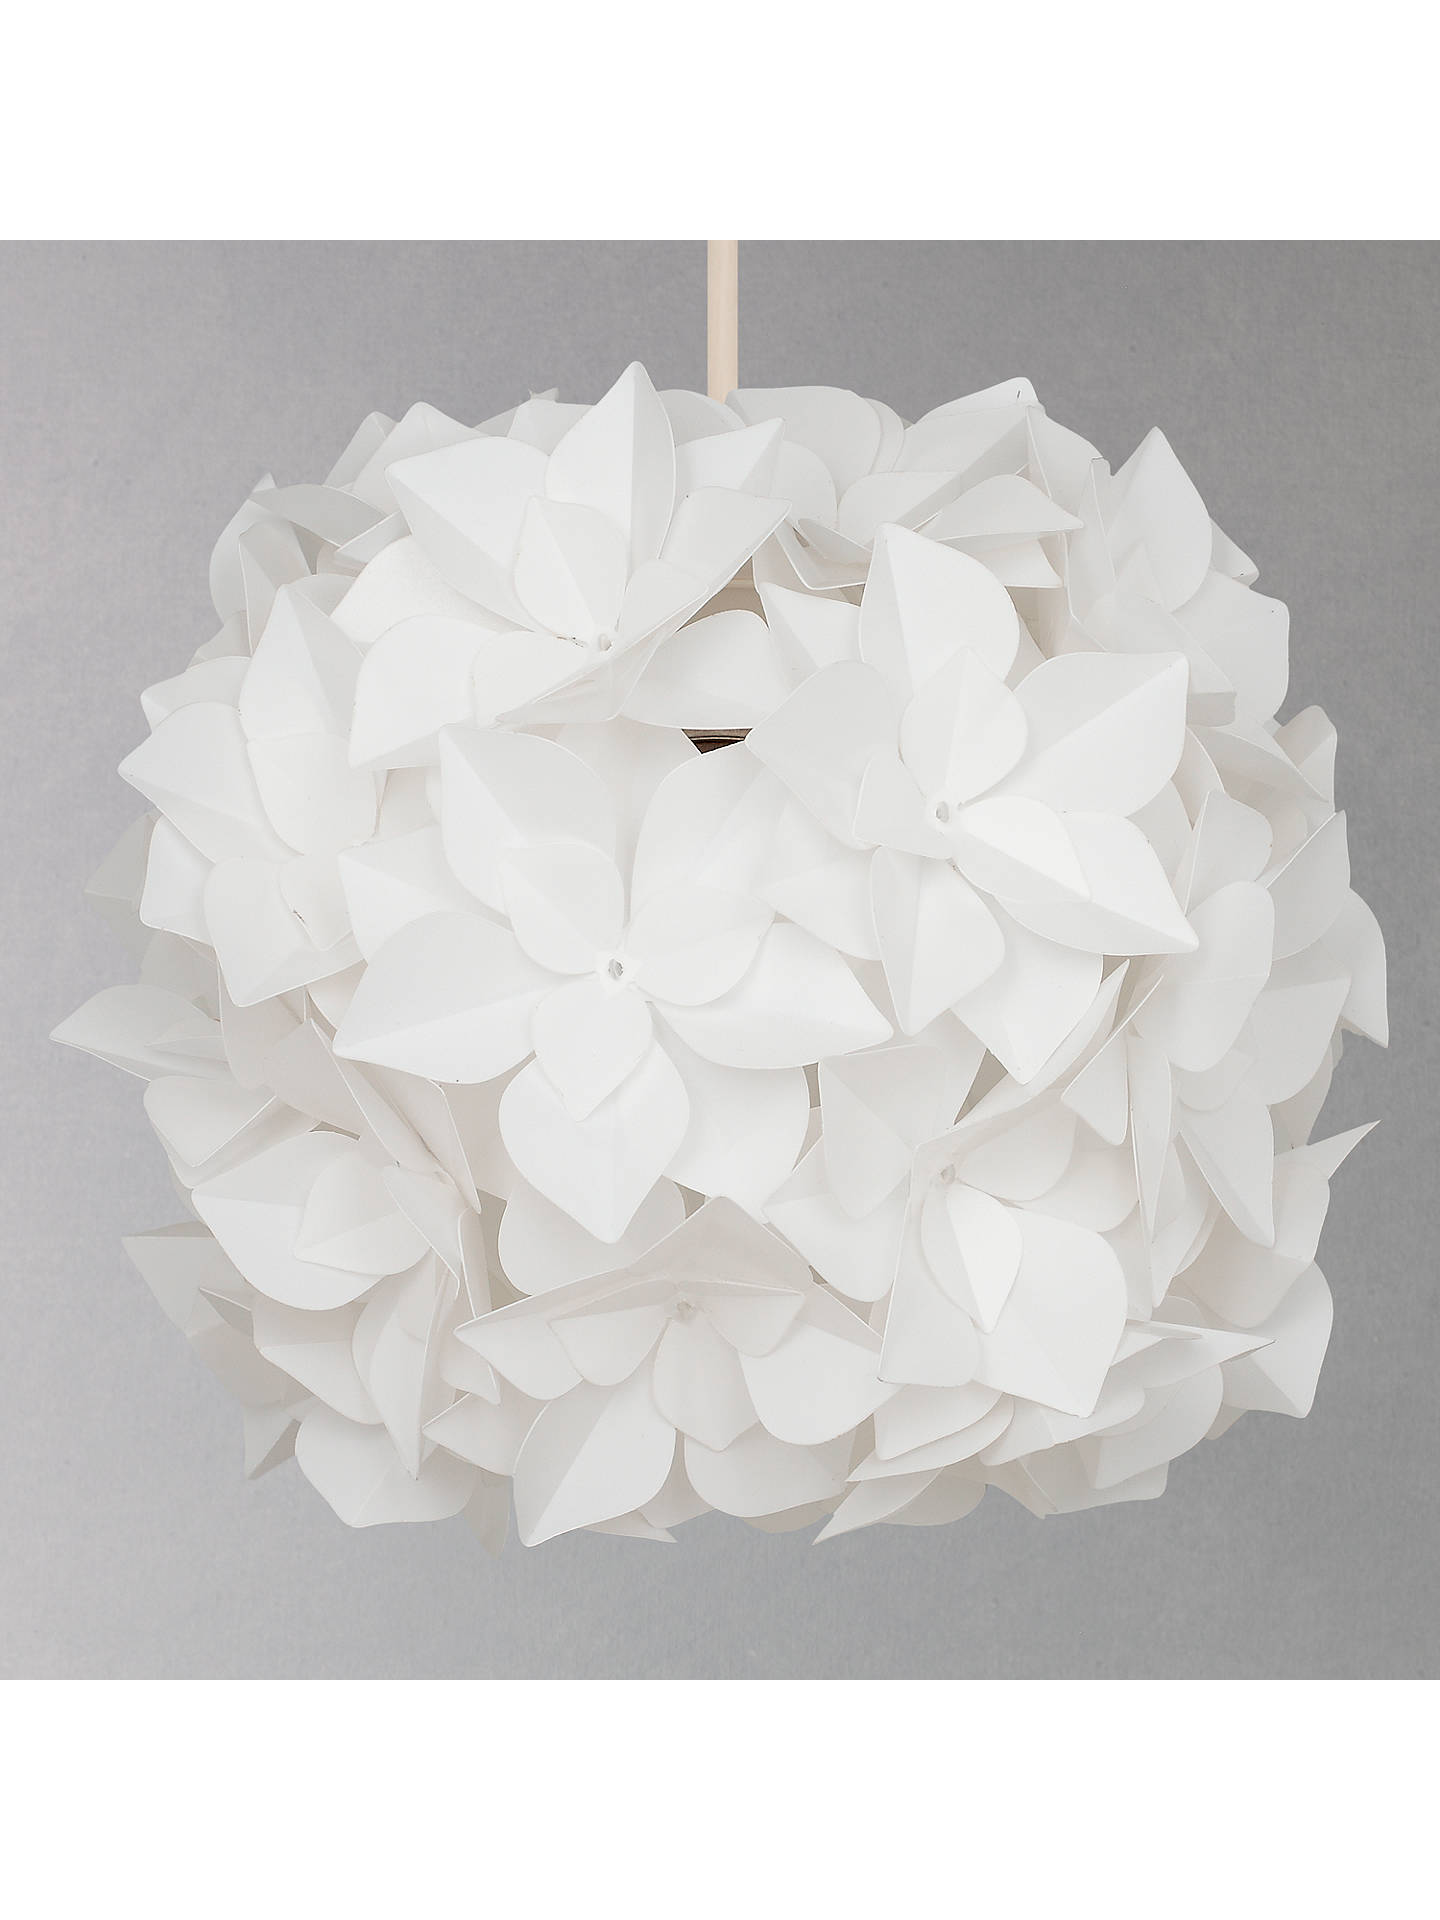 BuyJohn Lewis & Partners Lotus Easy-to-Fit Flower Ceiling Shade Online at johnlewis.com